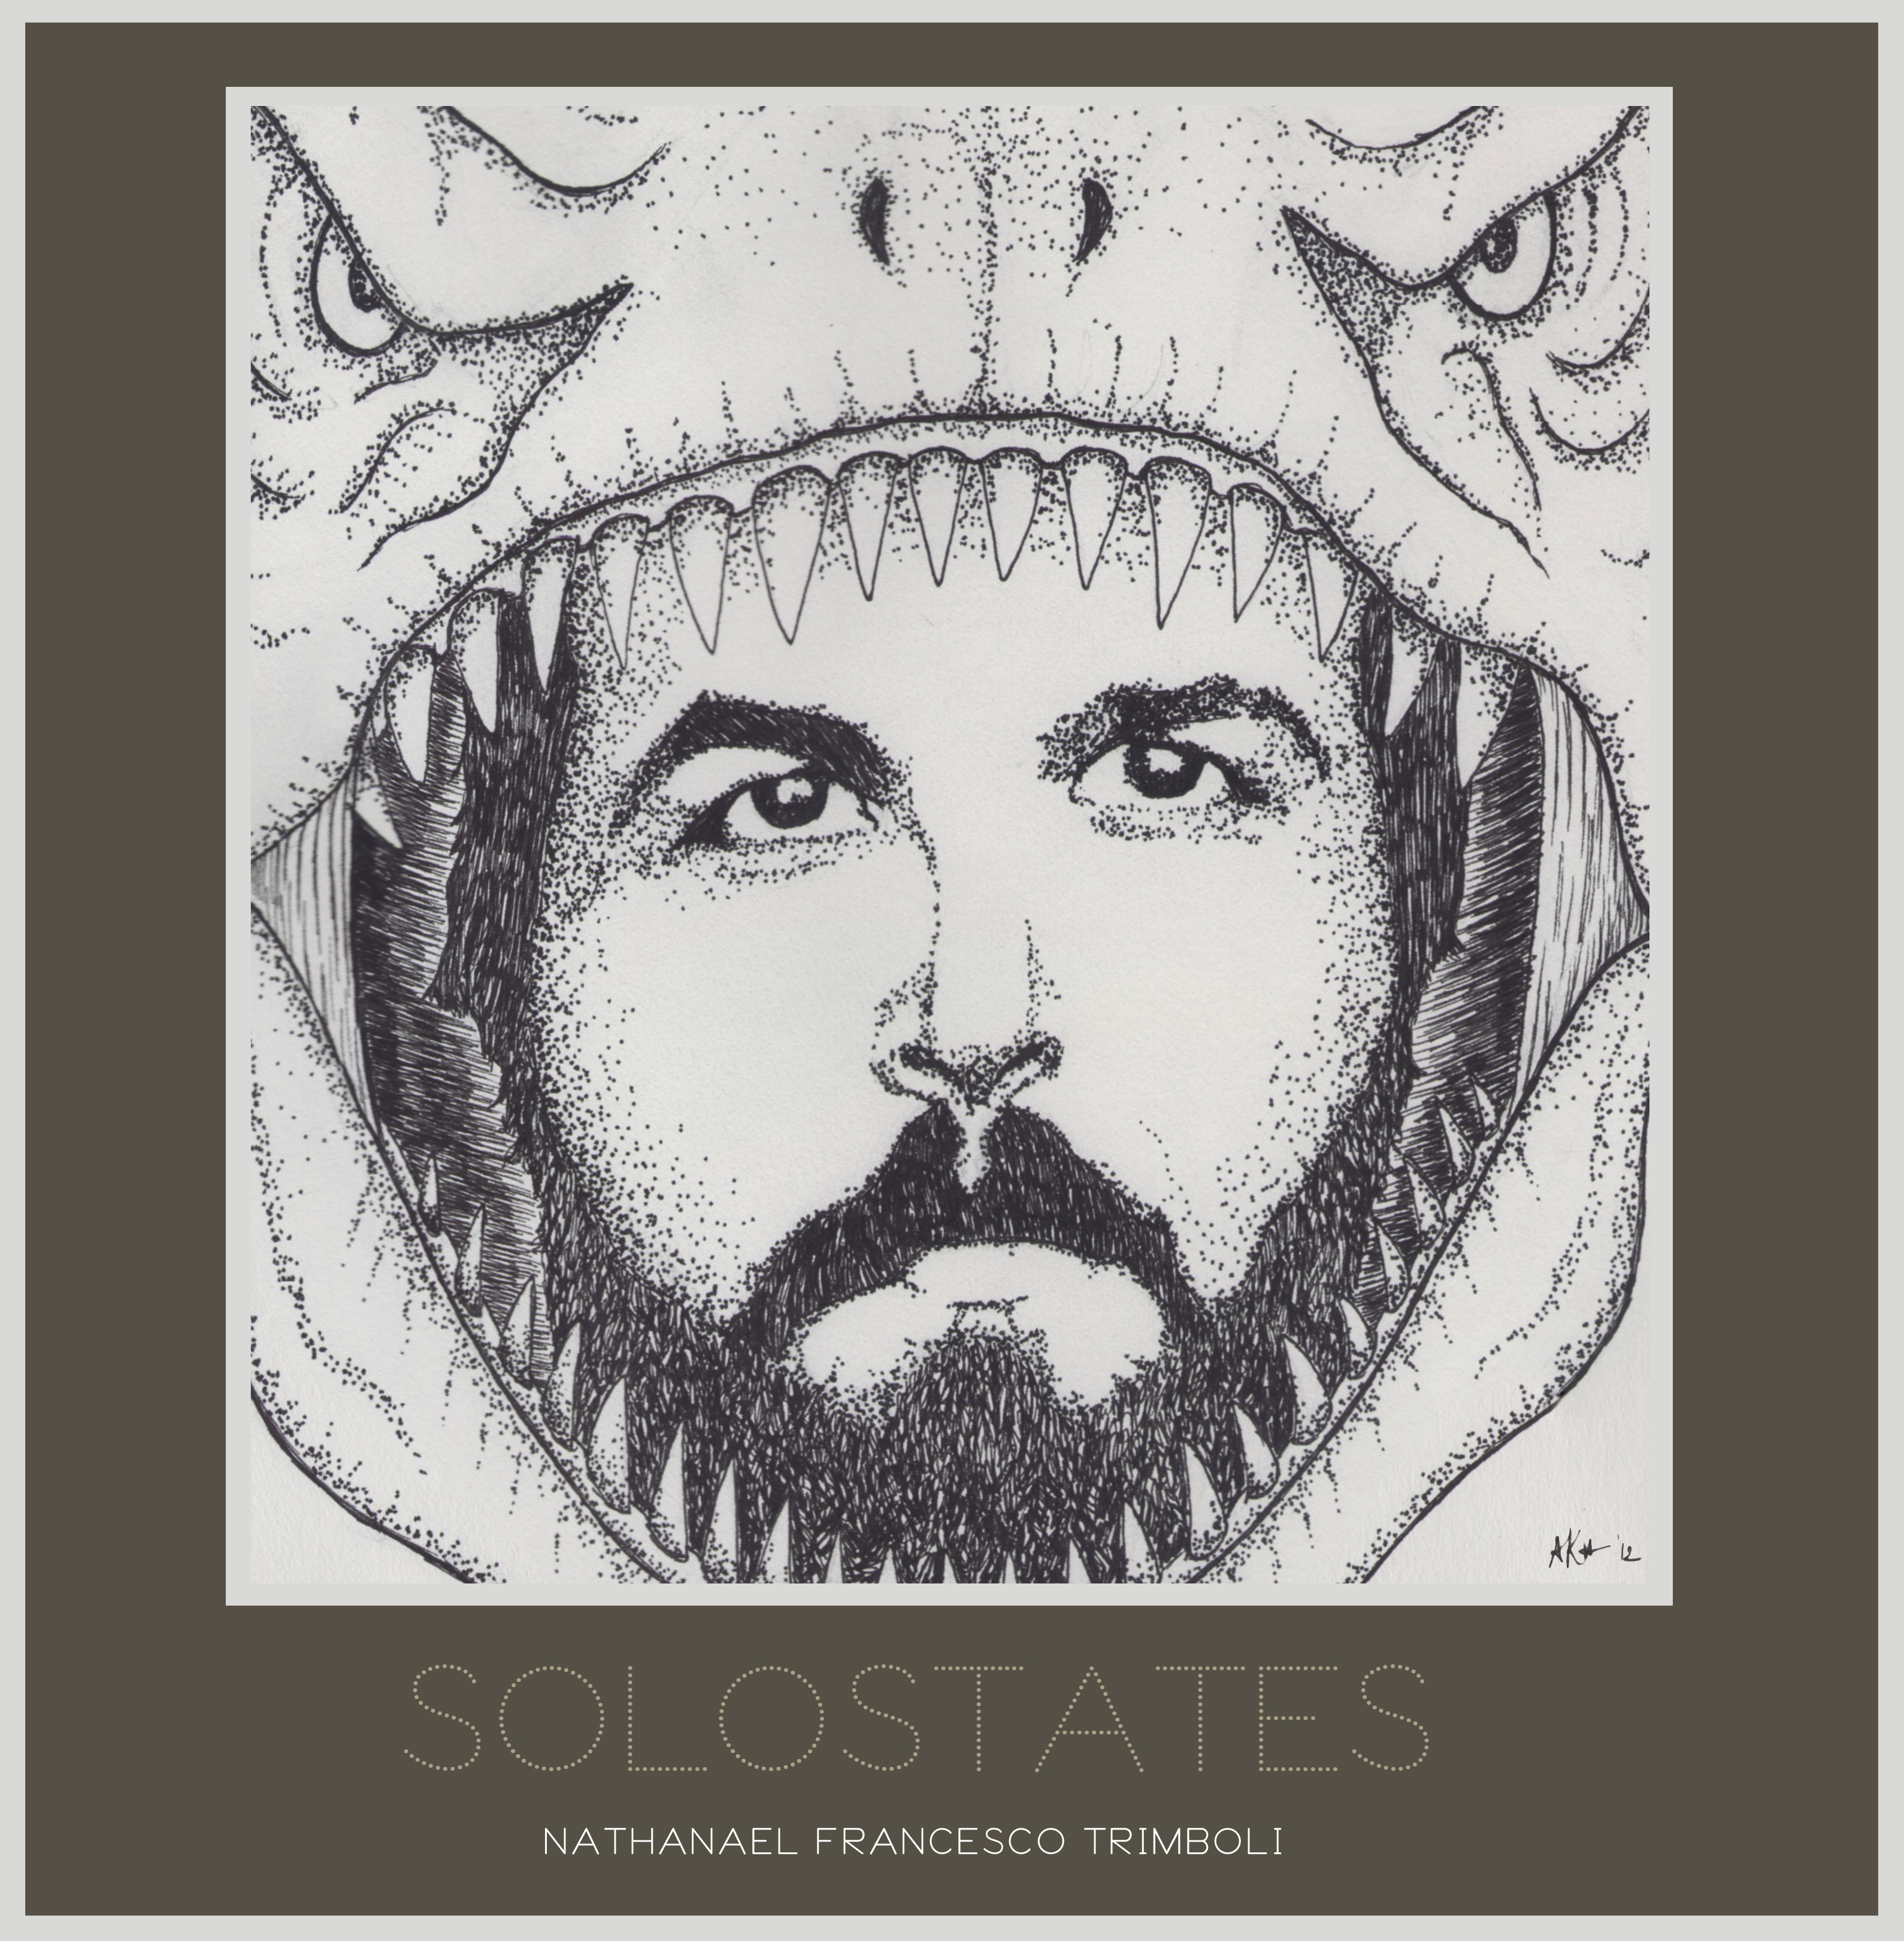 SOLOSTATES - Promo Material